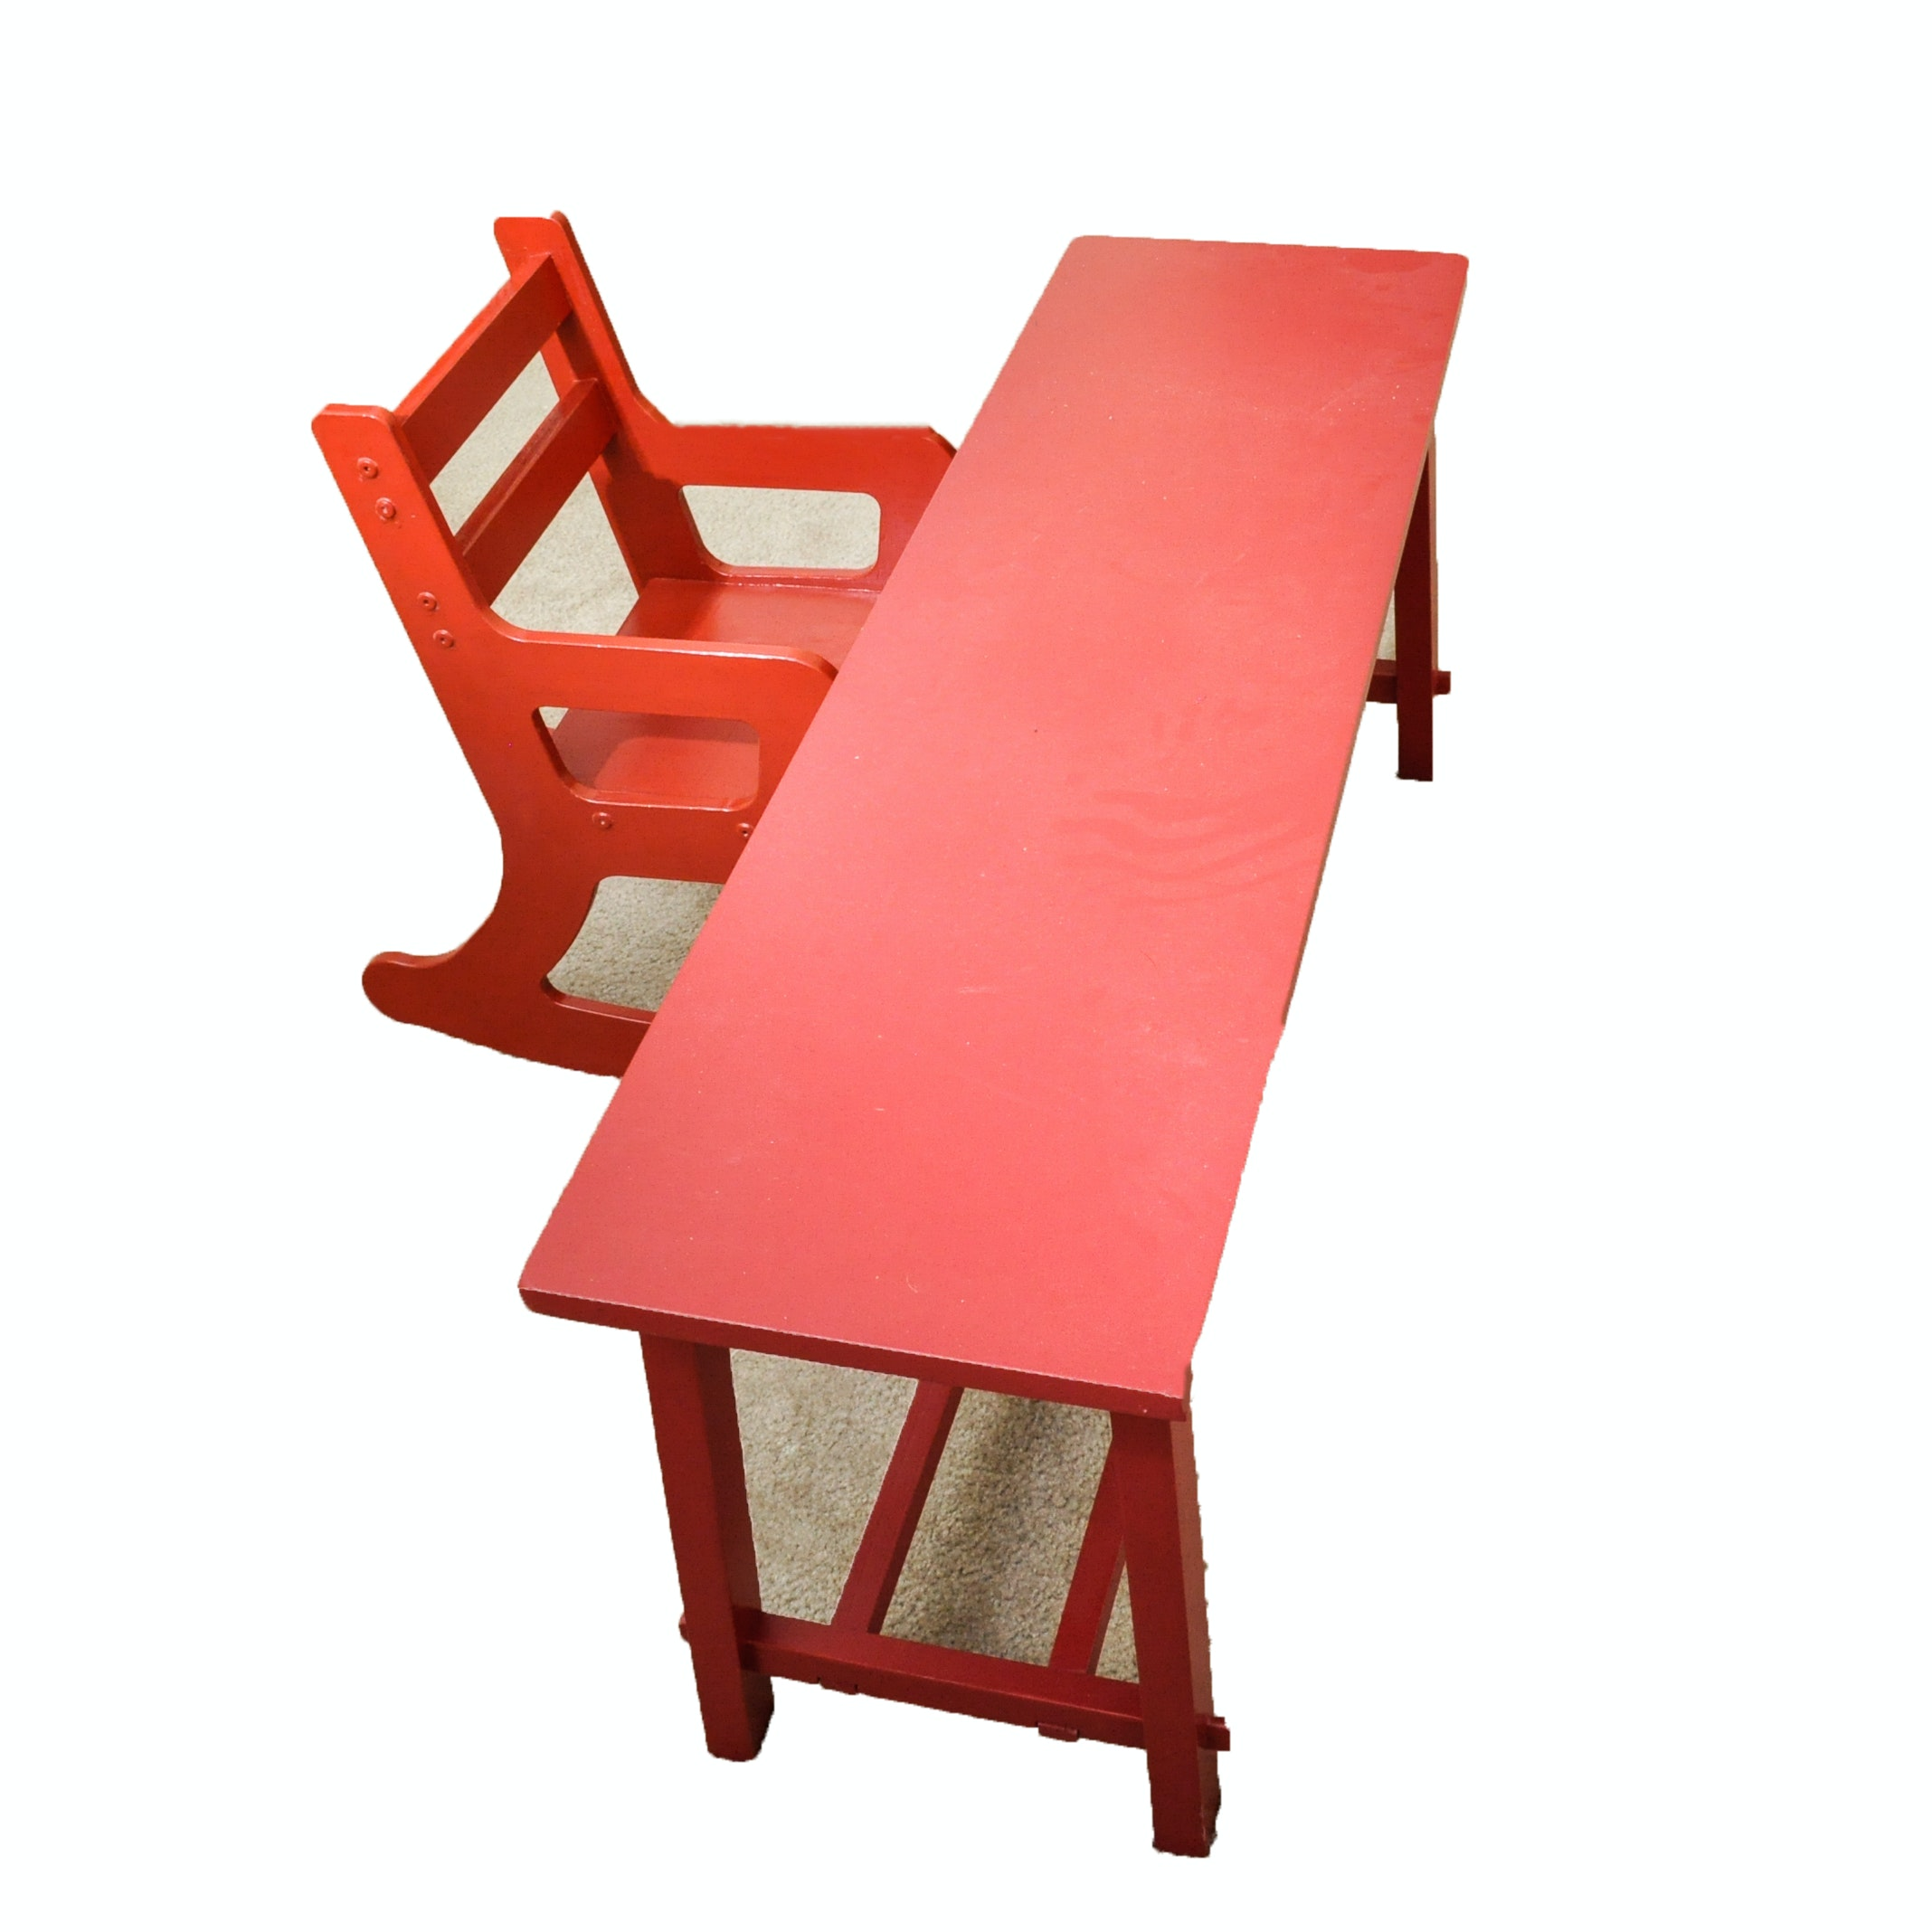 Childs Rocking Chair and Table